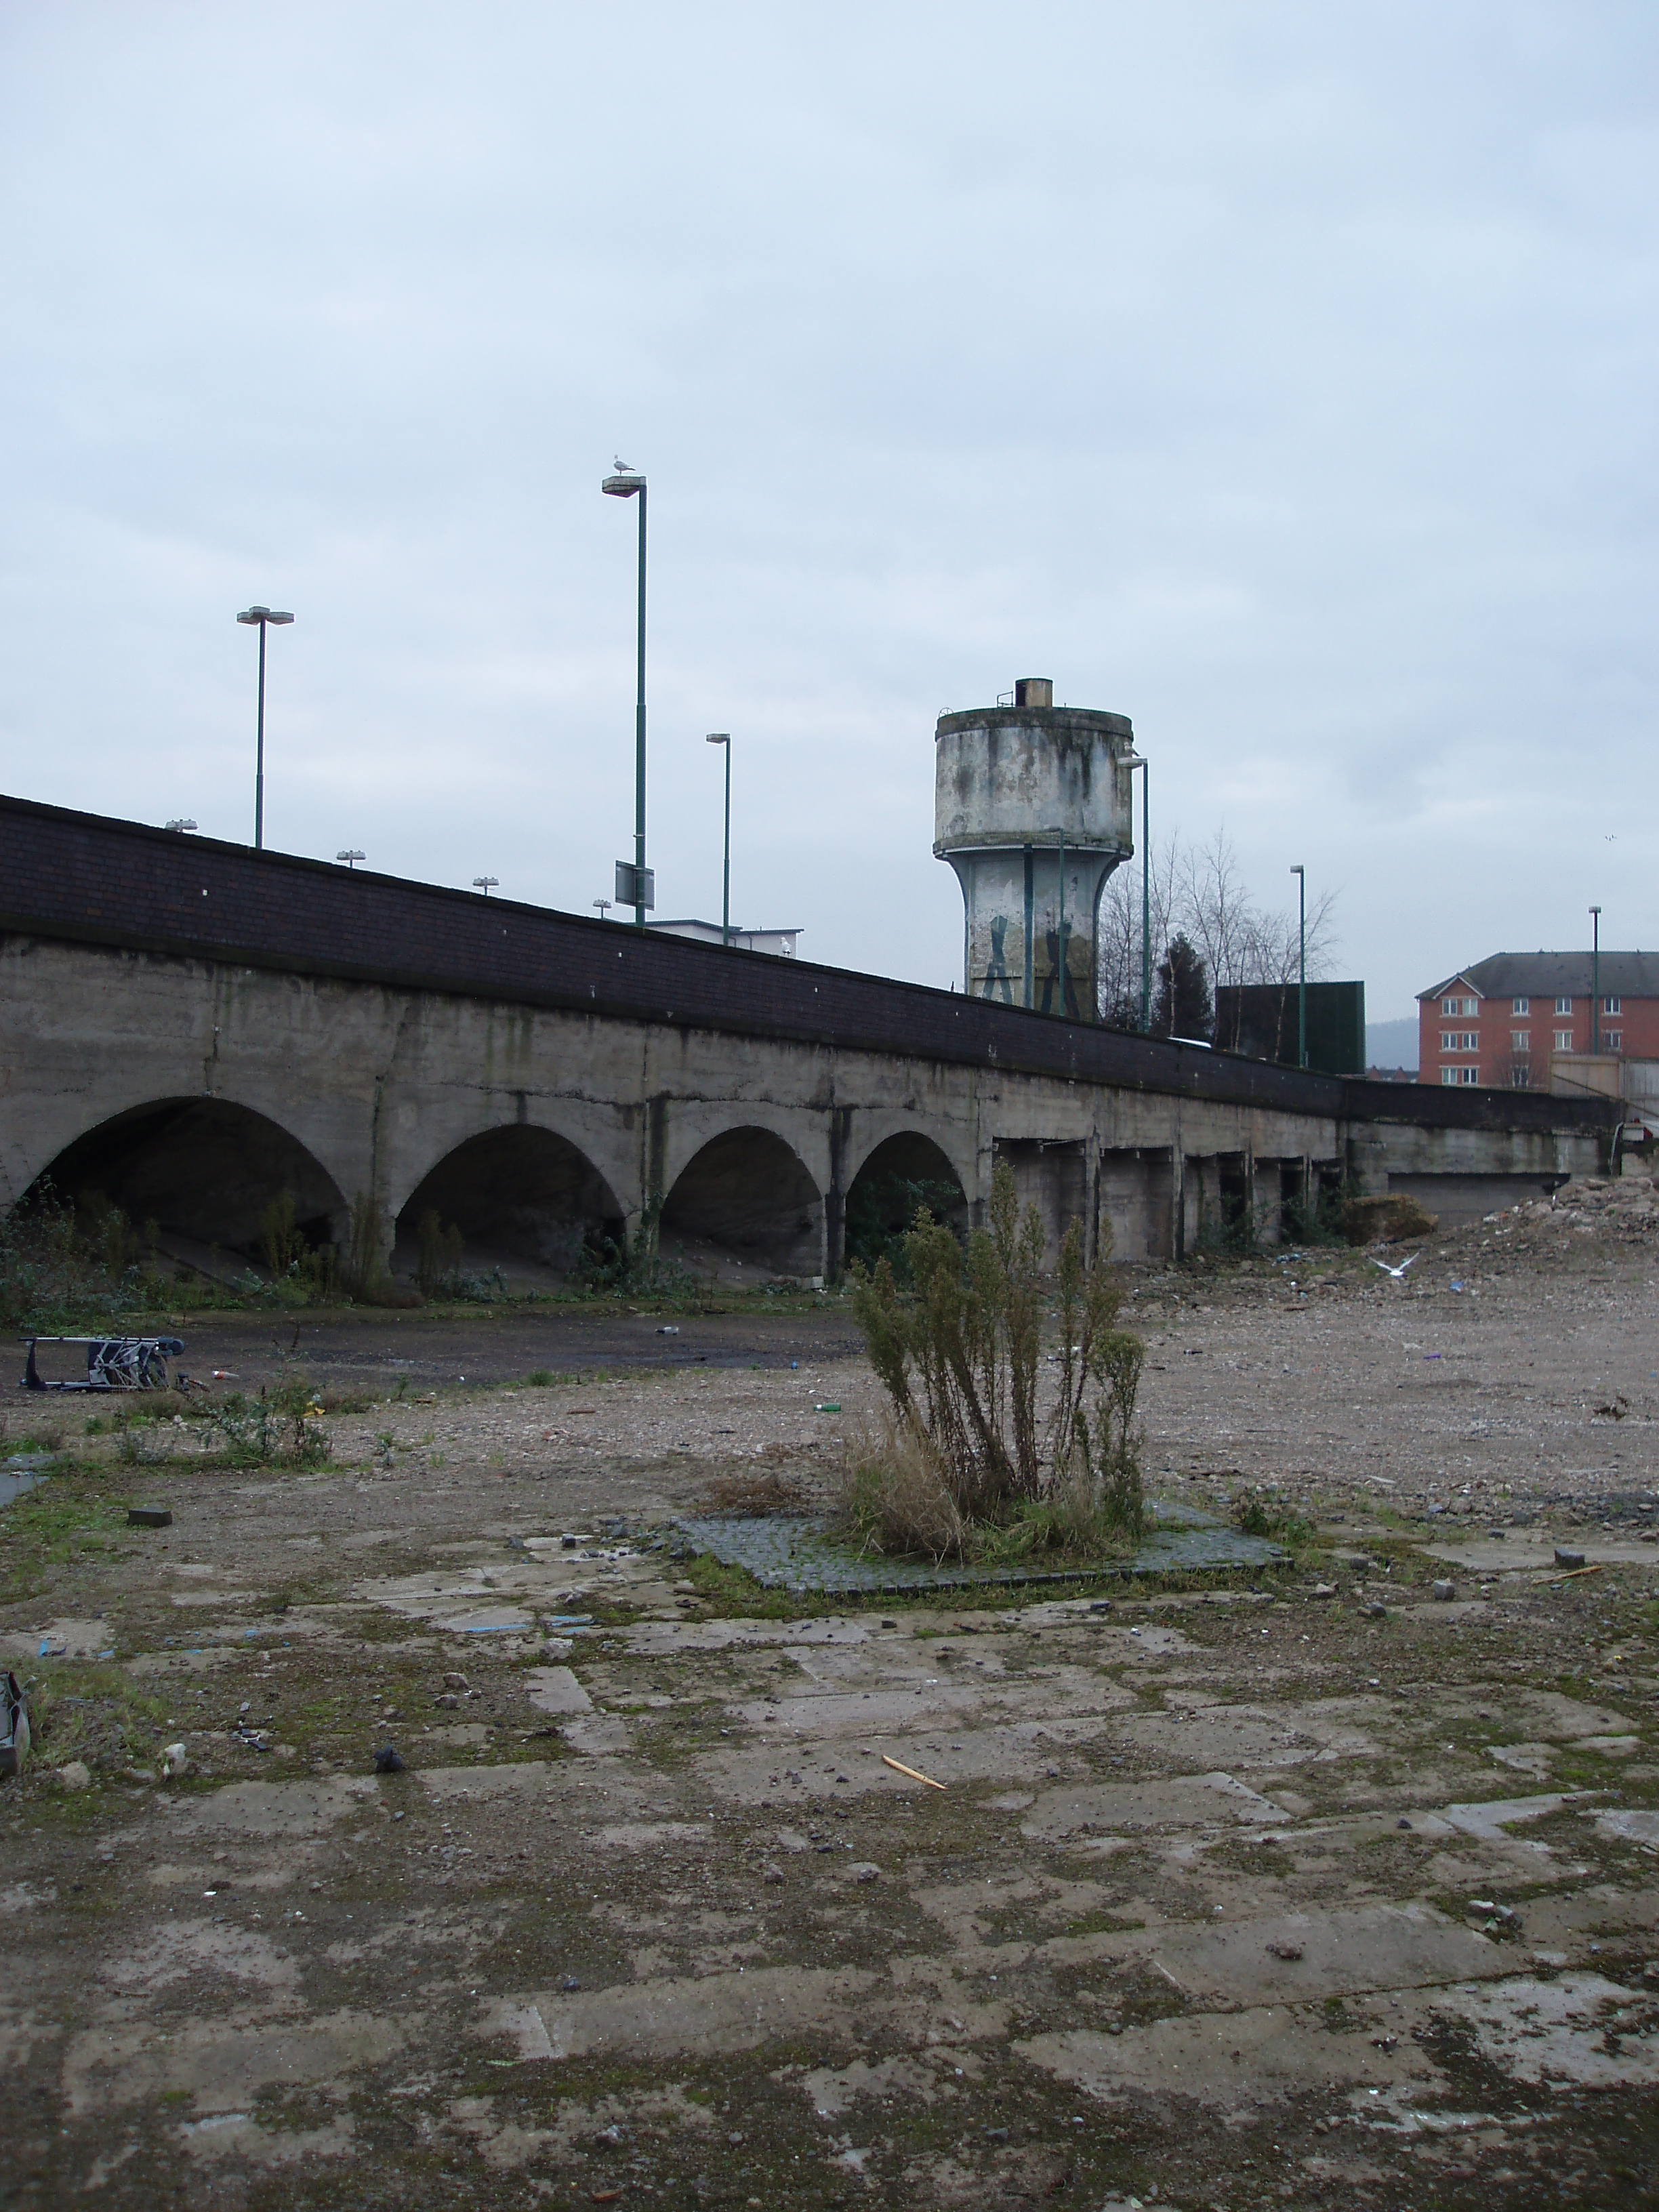 cardiff central station wasteland